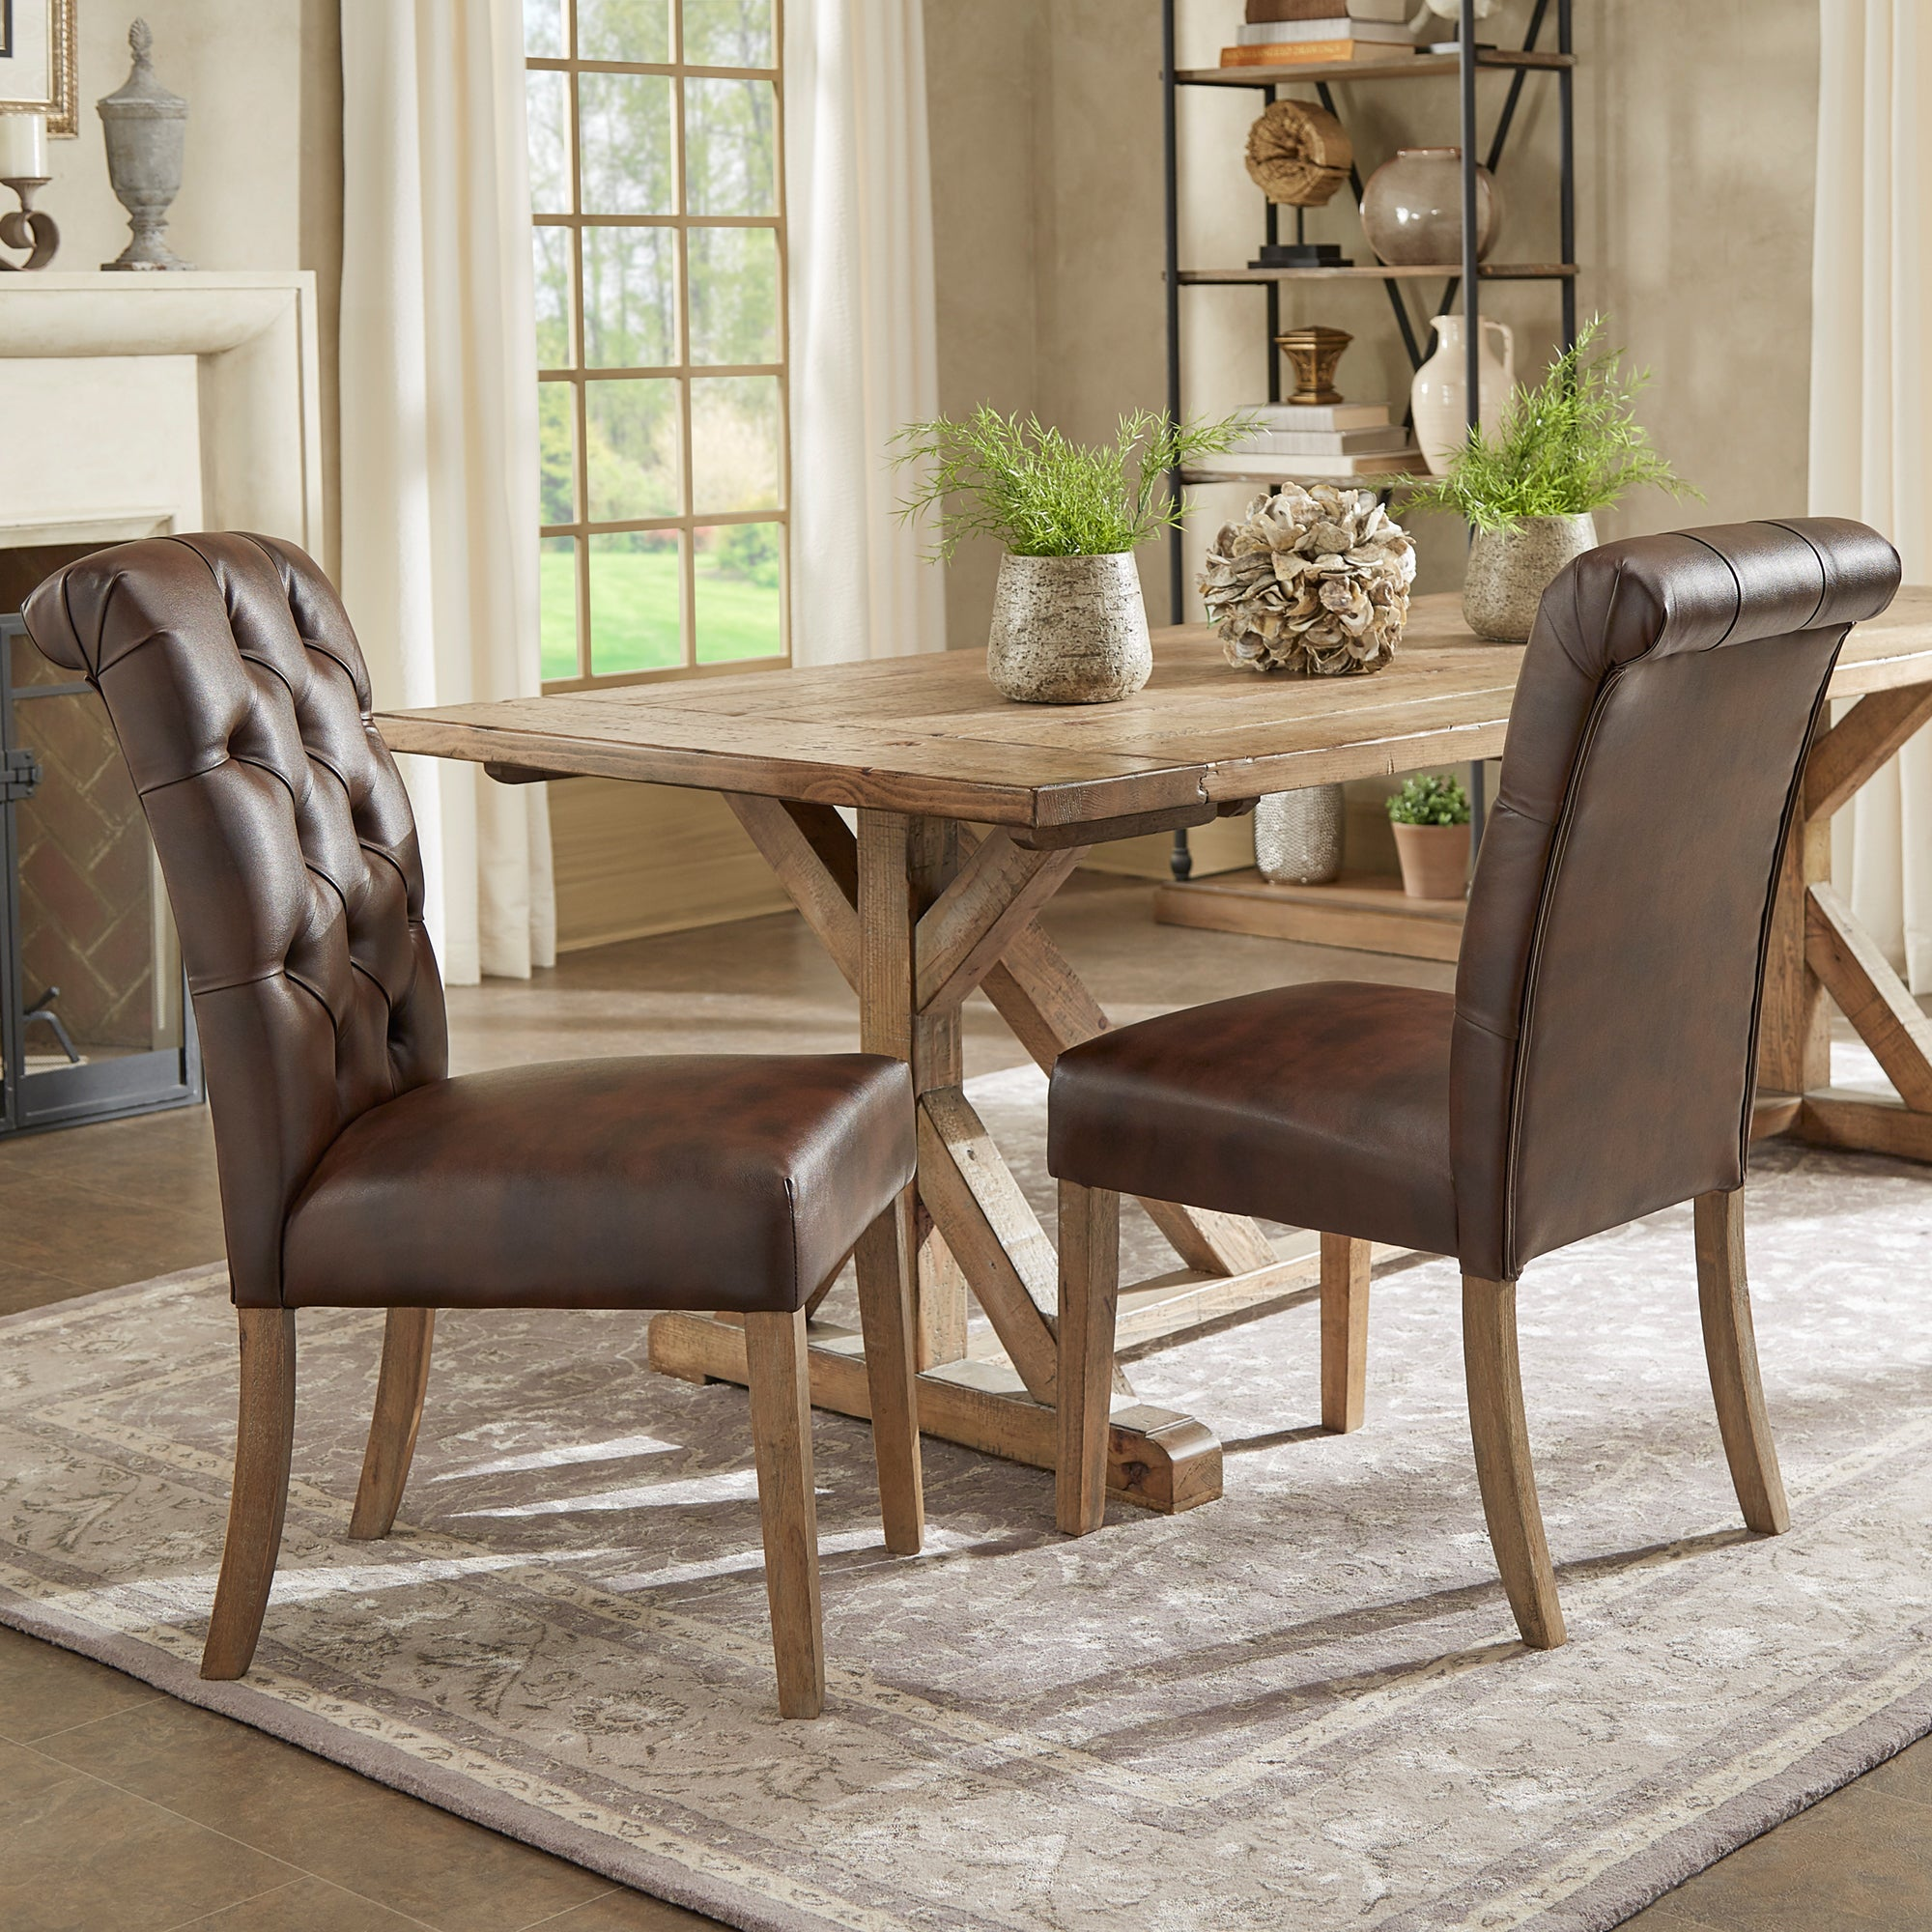 Benchwright Premium Tufted Rolled Back Parsons Chairs Set